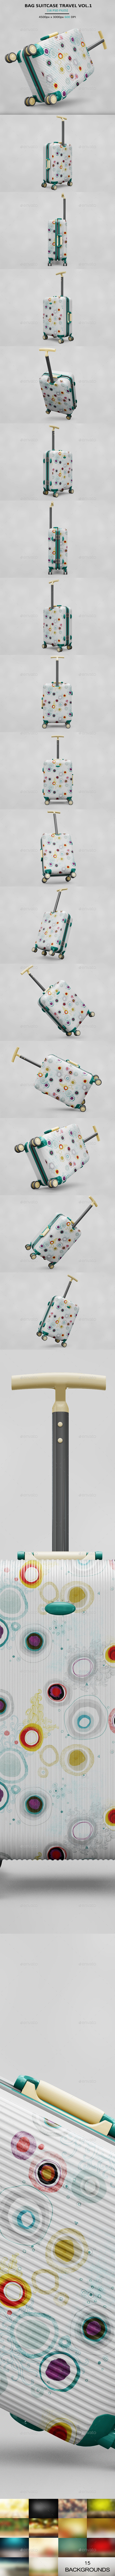 Bag Suitcase Travel MockUp - Product Mock-Ups Graphics